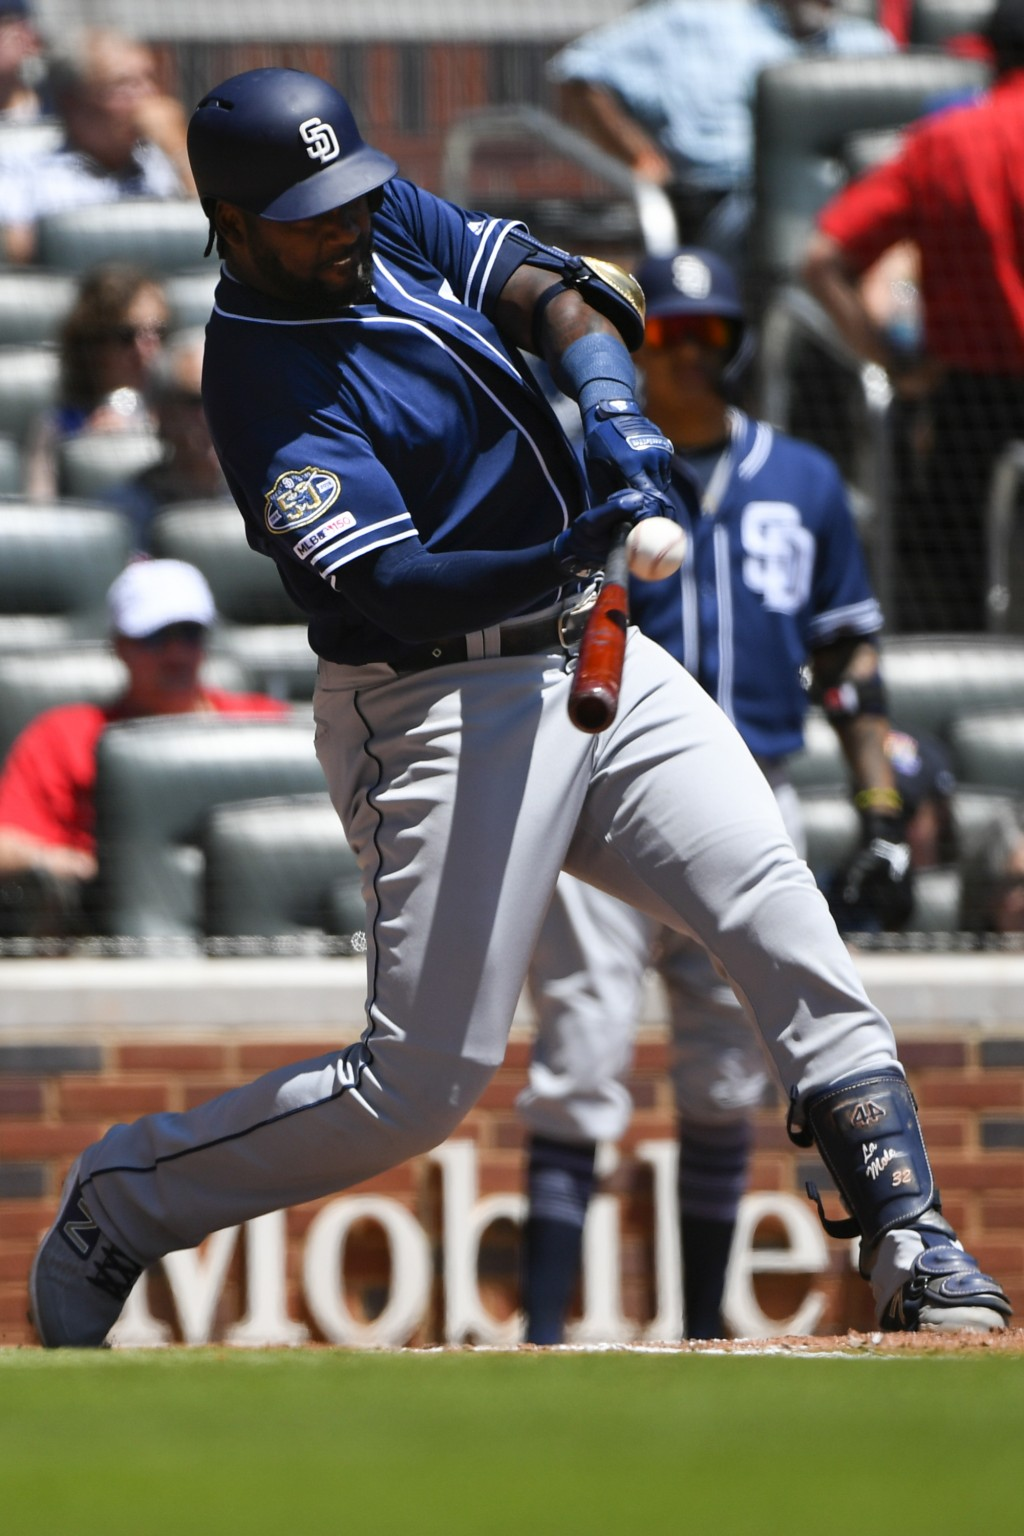 San Diego Padres' Franmil Reyes connects for fly ball to center field to single against the Atlanta Braves during the fifth inning of a baseball game